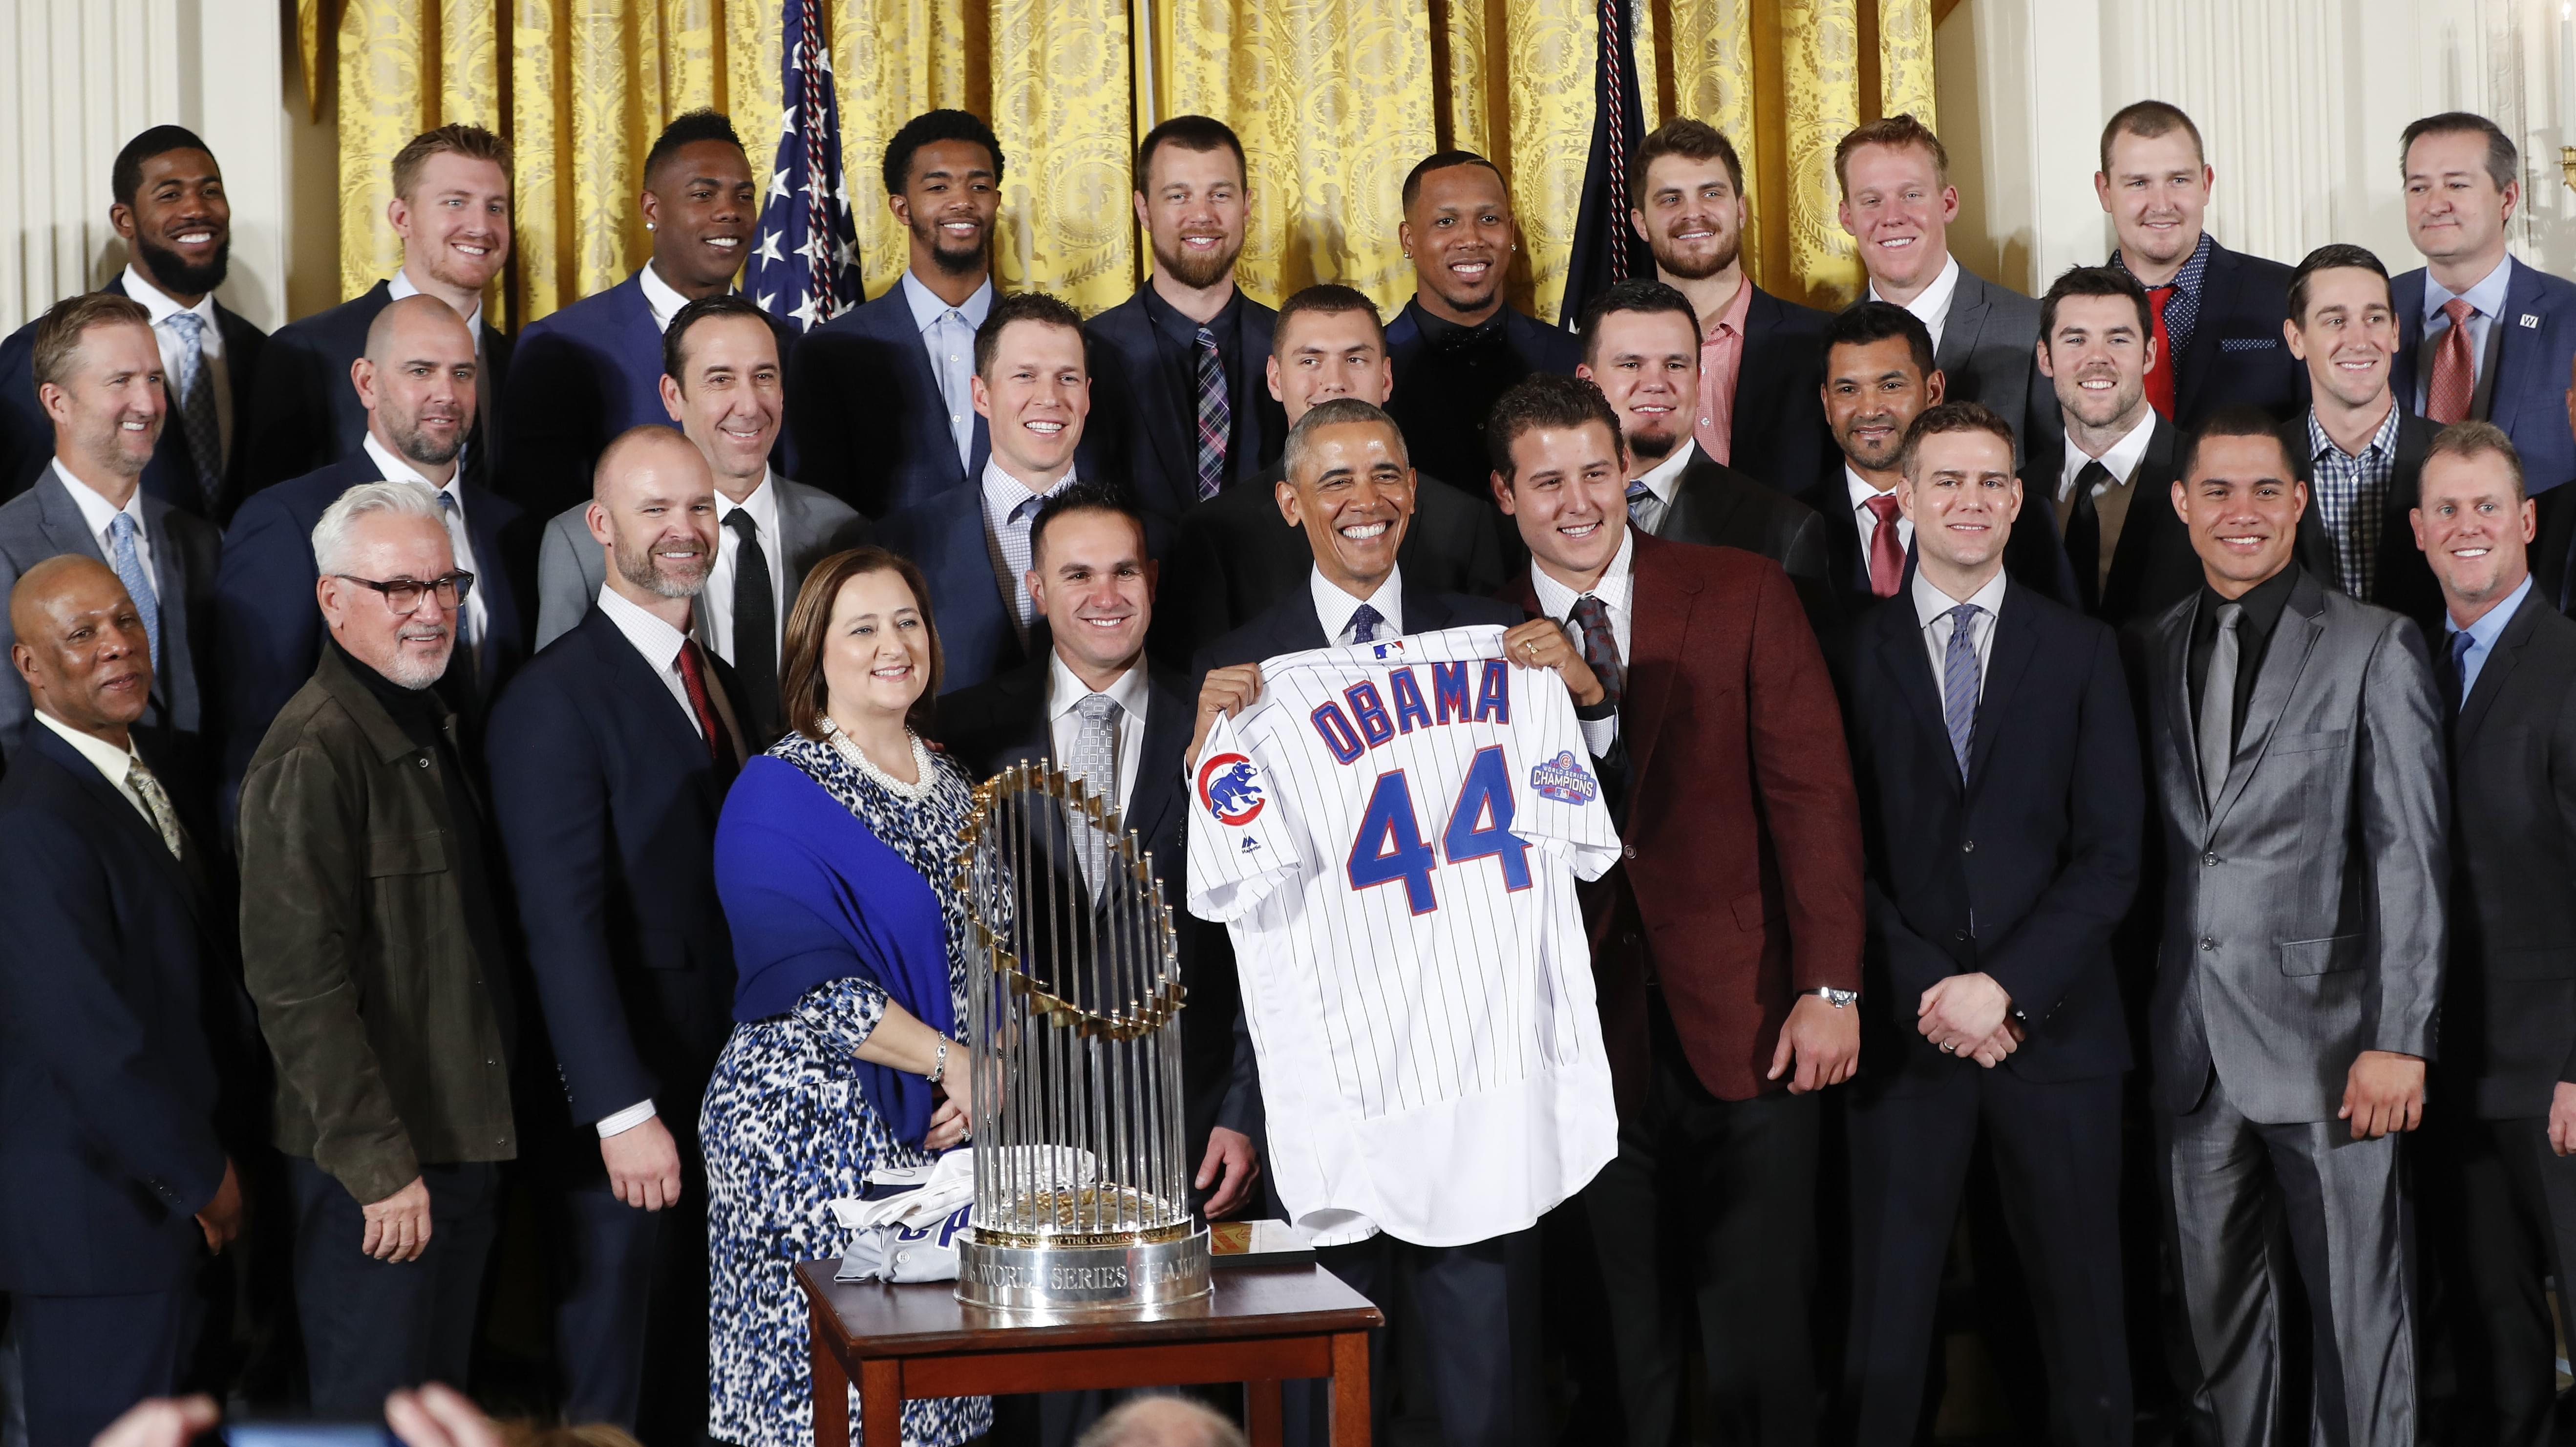 President Barack Obama holds up a personalized Chicago Cubs baseball jersey presented to him for a group photo during a ceremony in the East Room of the White House in Washington, Monday, where the president honored the 2016 World Series Champion bas